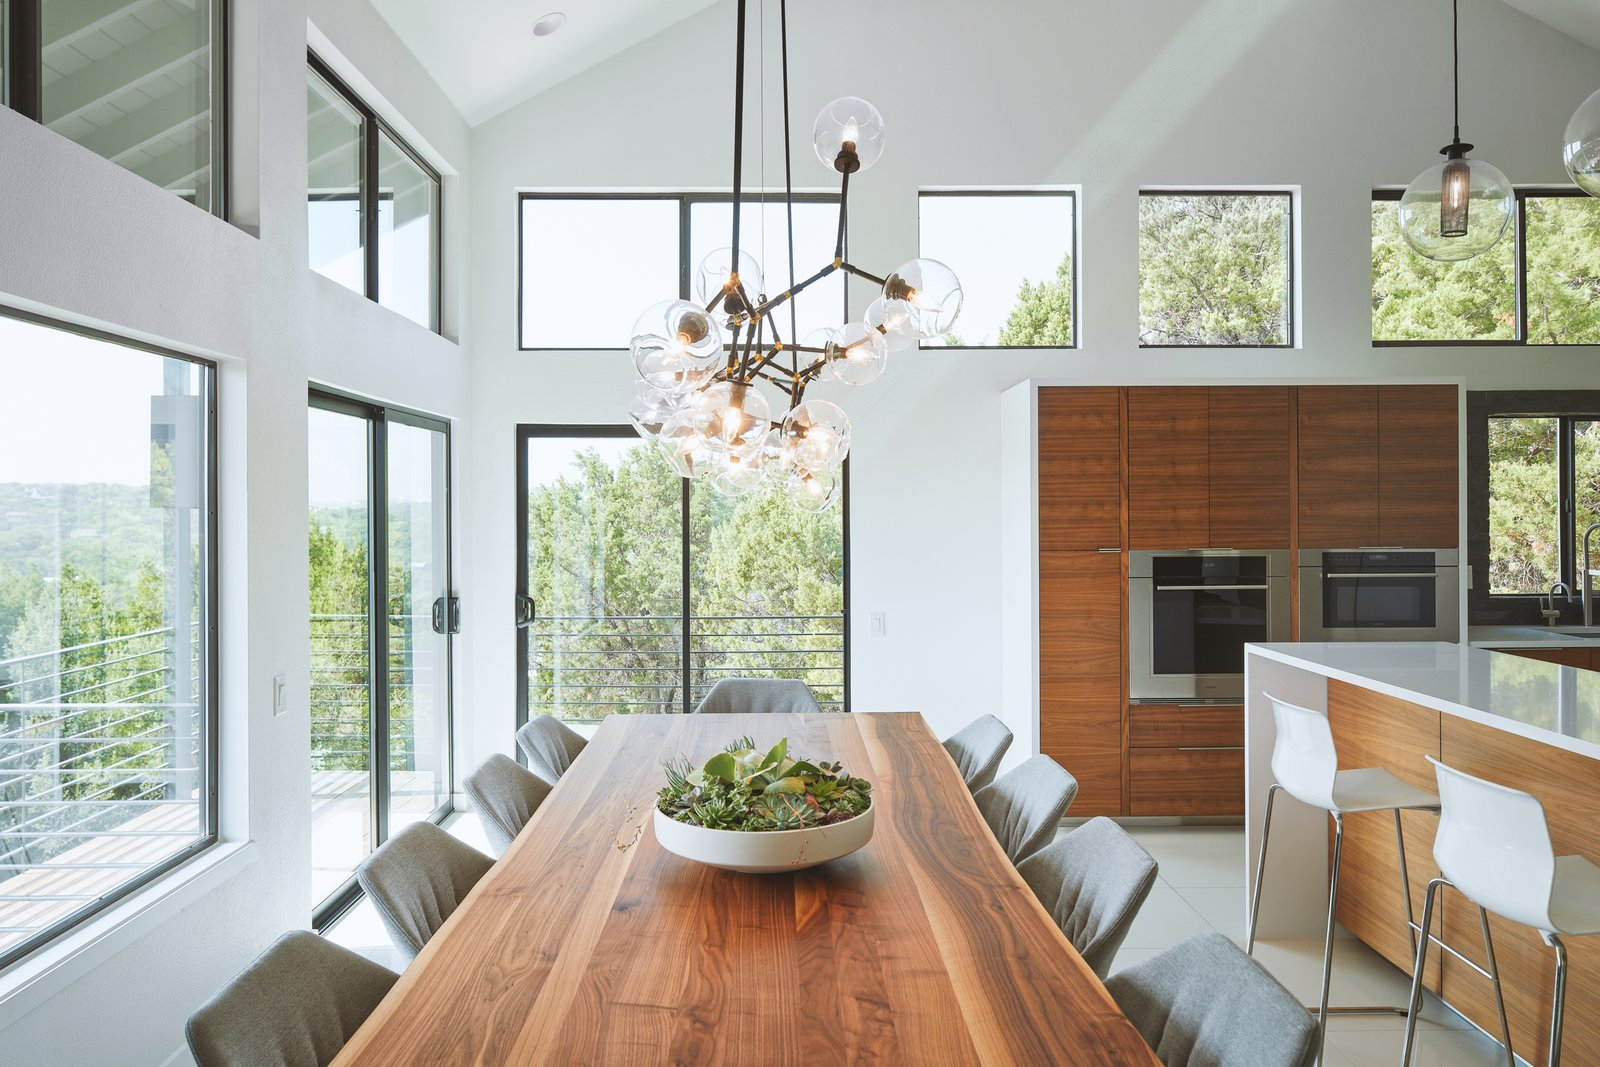 Dining Room, Table, Chair, Stools, Pendant Lighting, Recessed Lighting, and Ceiling Lighting Via Media Residence by Matt Fajkus Architecture | Photo by Leonid Furmansky  Via Media Residence by Matt Fajkus Architecture